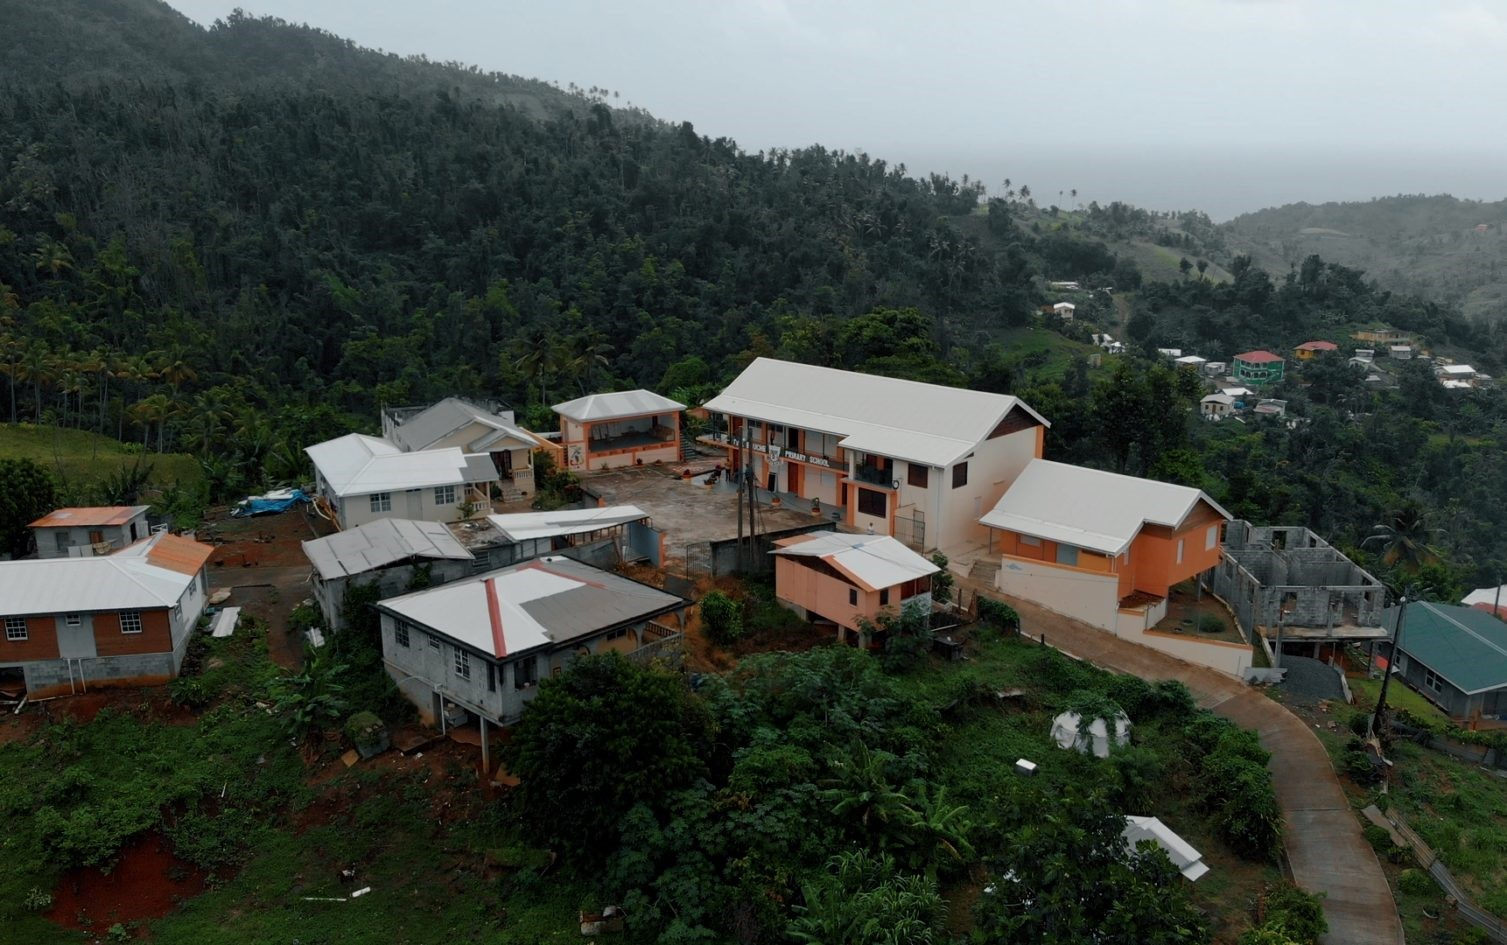 <p>A school in Dominica rebuilt after Hurricane Maria. Photo by Tom Kucy/Clara Lionel Foundation.</p>